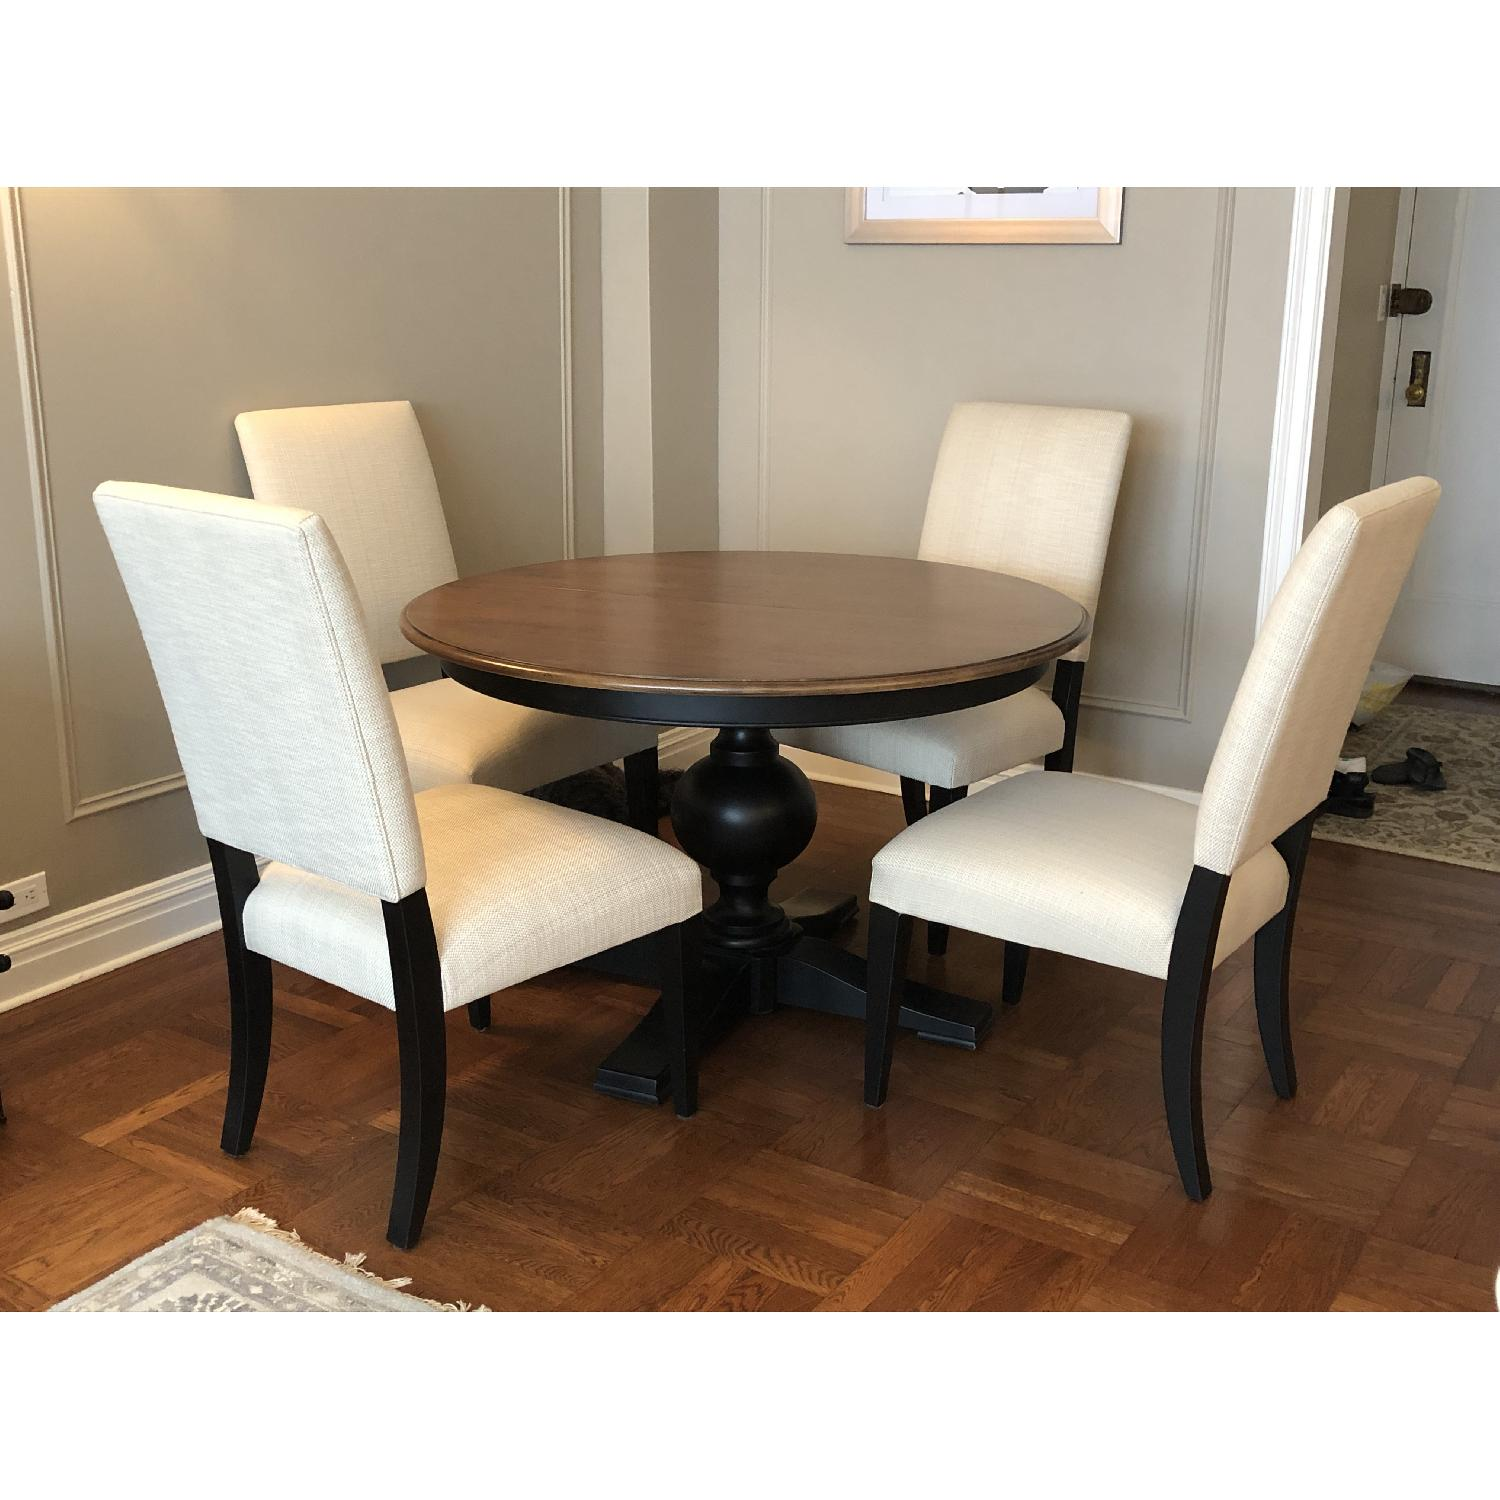 Ethan Allen Expandable Dining Table w/ 4 Chairs - image-0